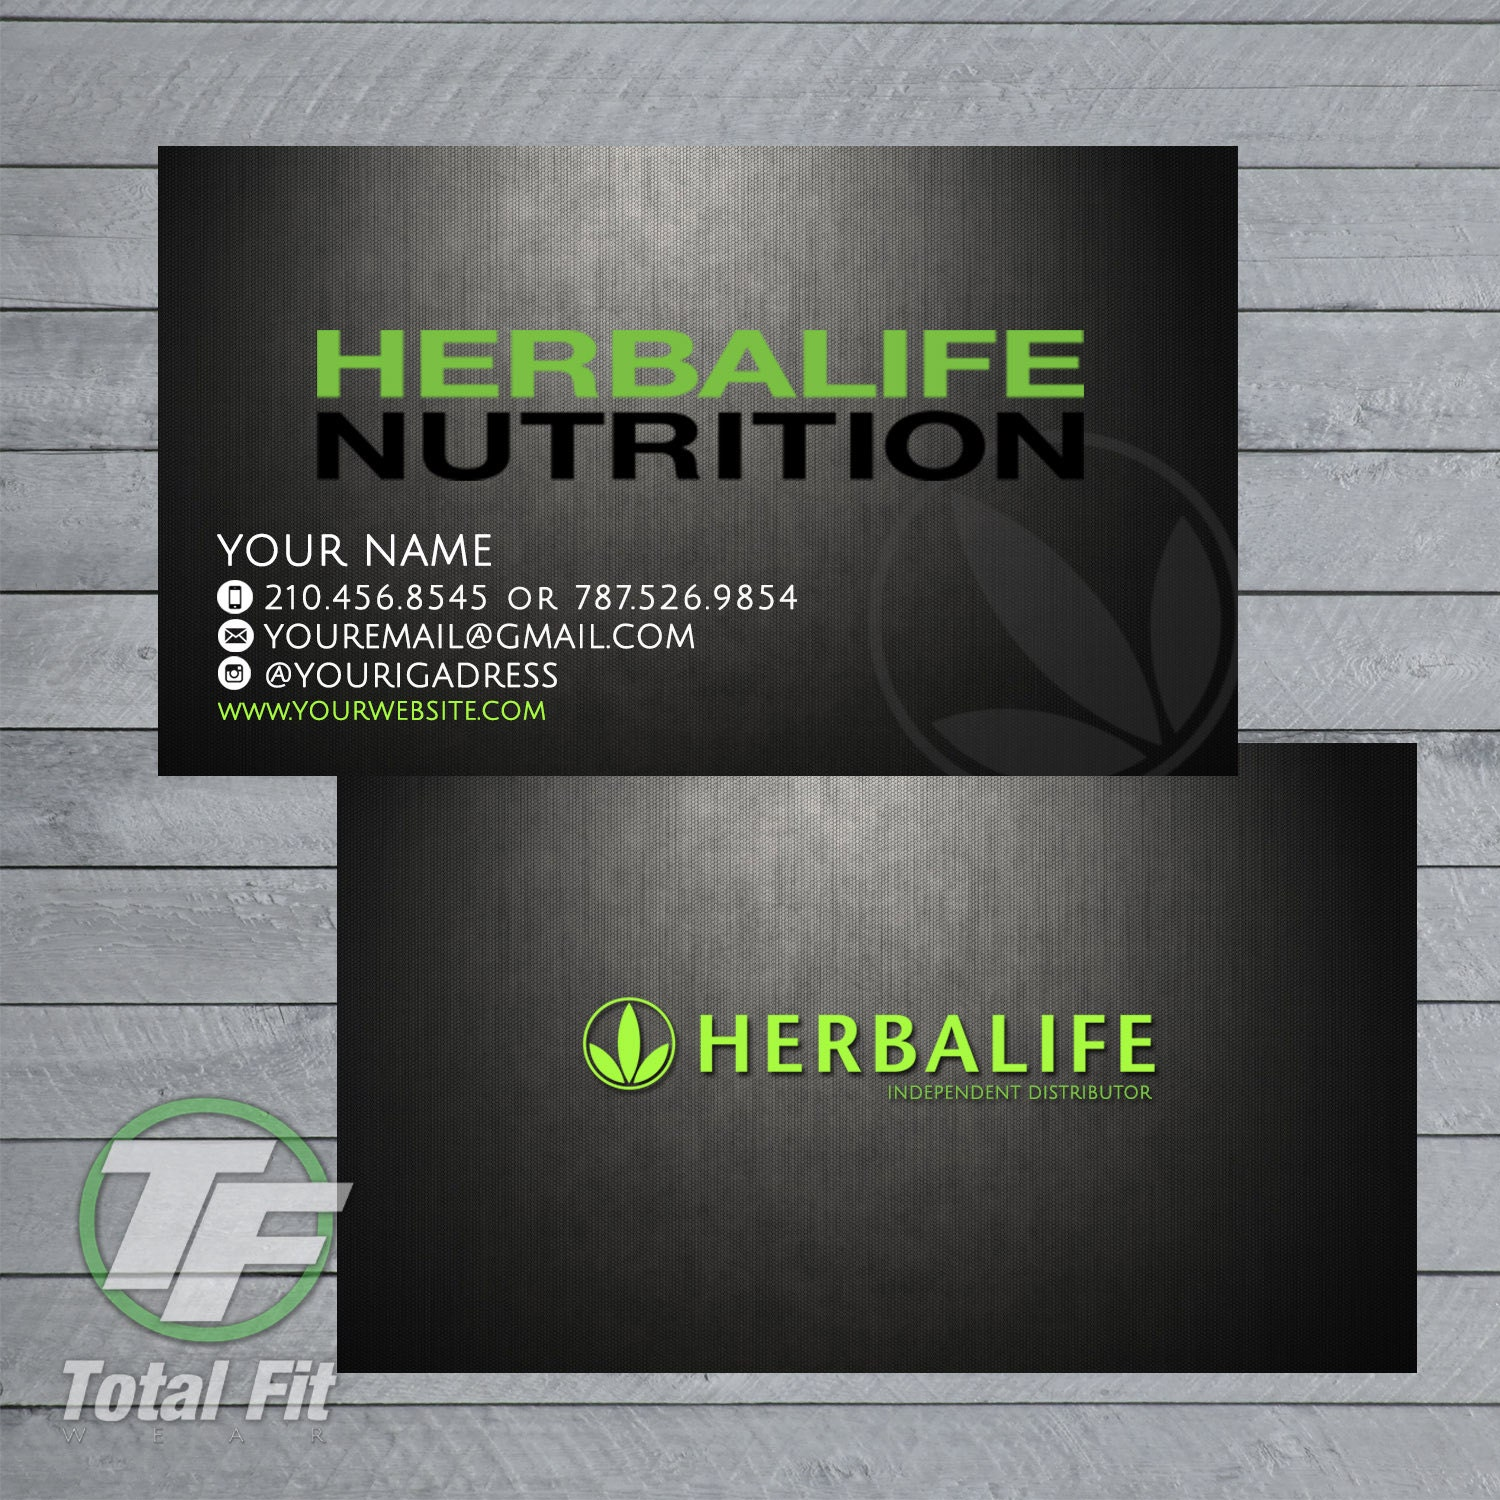 Herbalife business cards herbalife graphics by totalfitwear for Herbalife business card